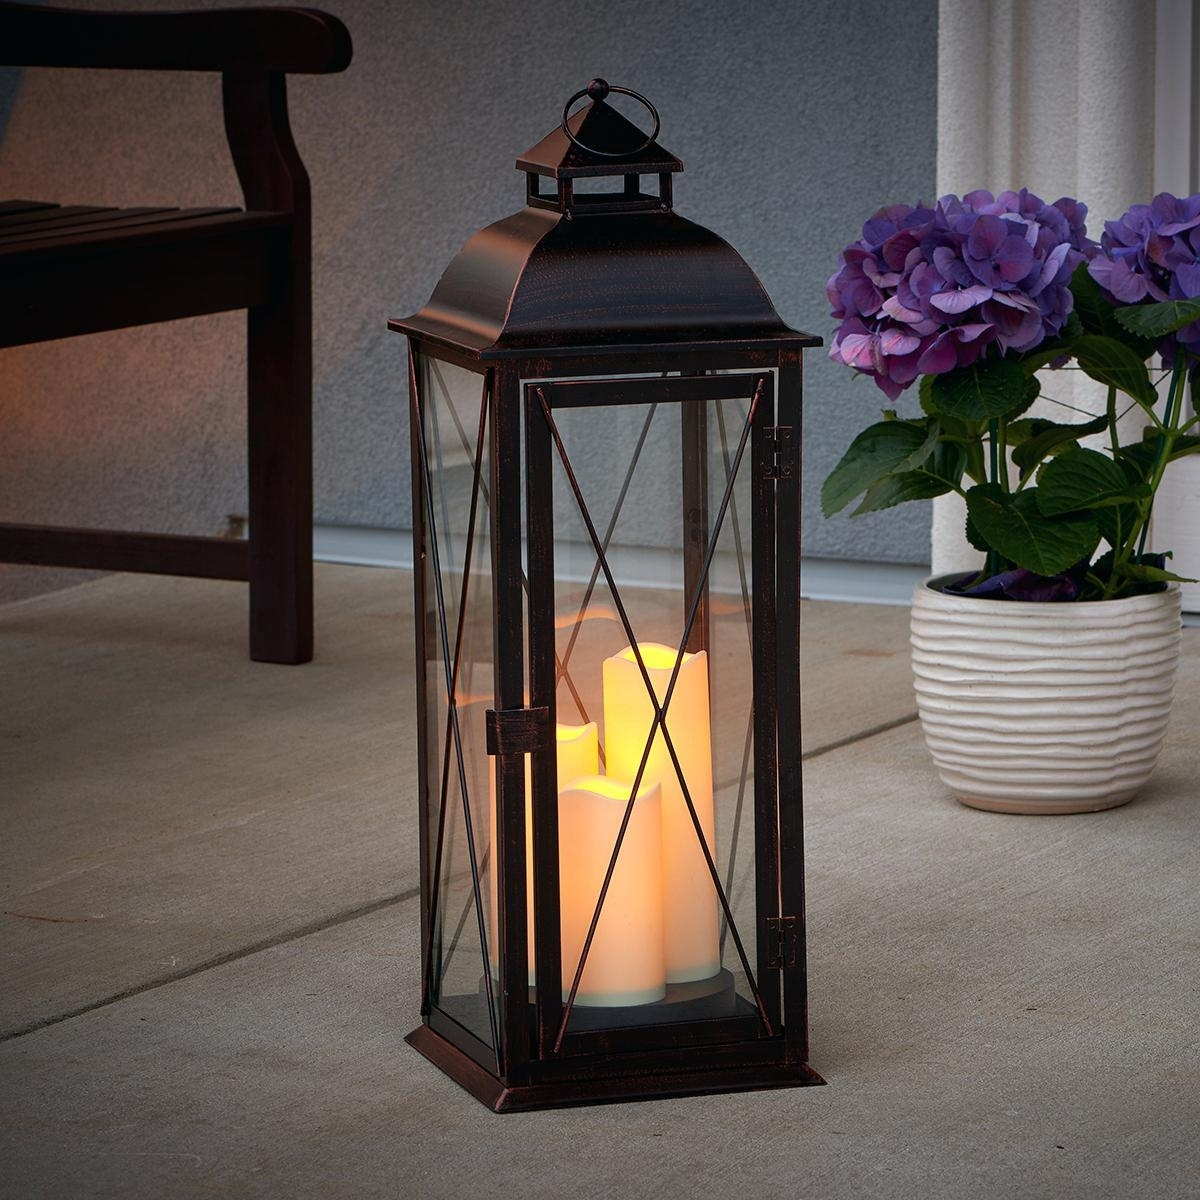 Outdoor Lanterns With Flameless Candles Pertaining To Most Recently Released Candles ~ Flameless Candle Lanterns Lantern For Block Black Indoor (View 5 of 20)